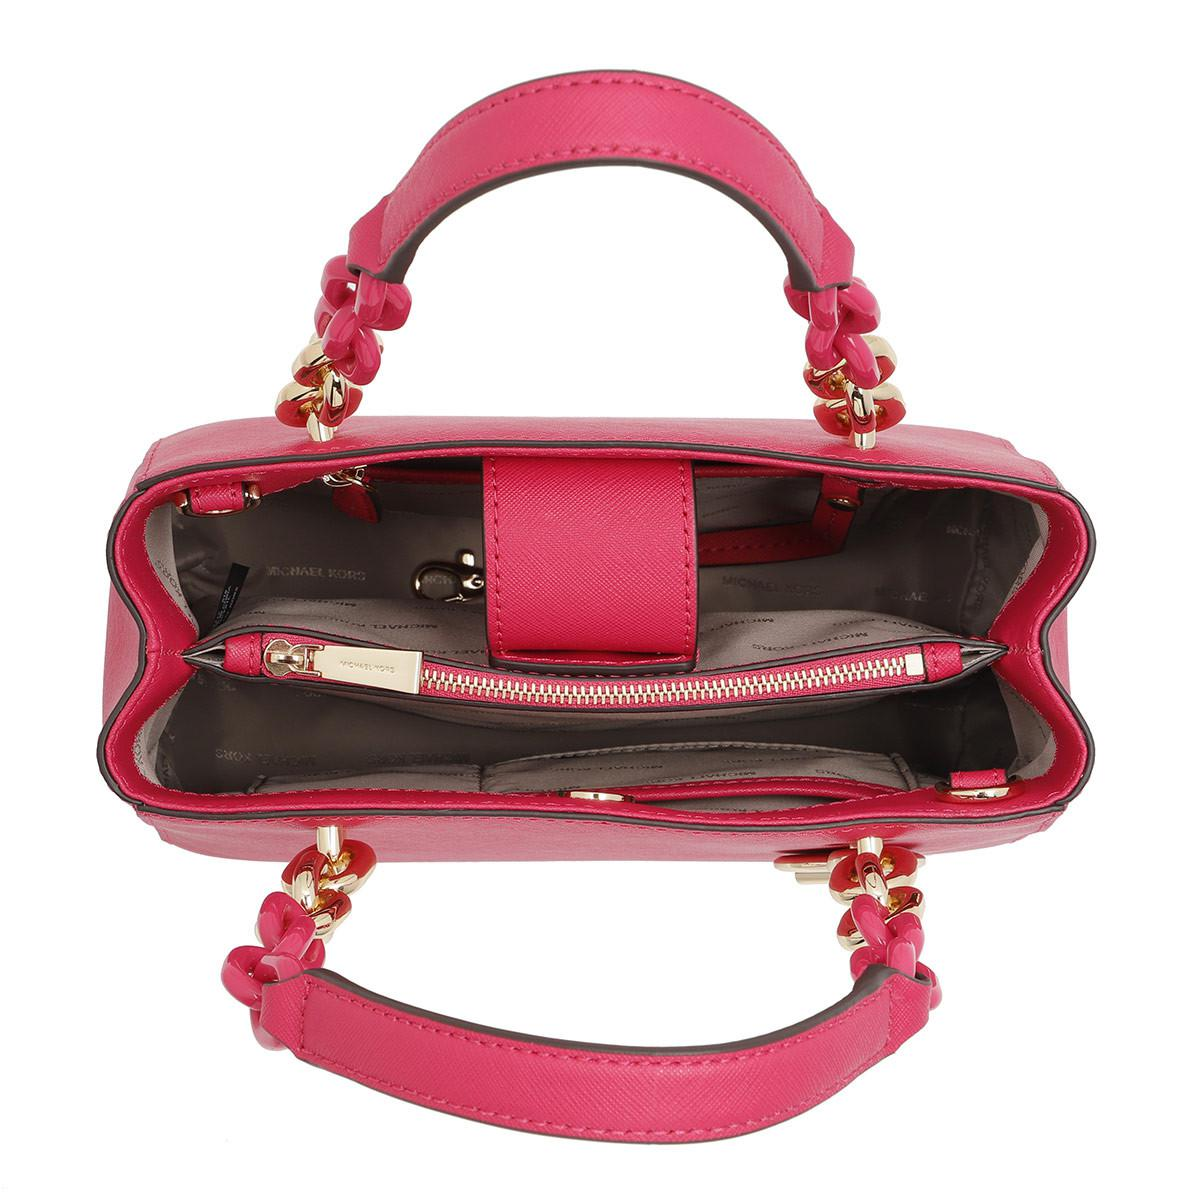 ba35d2630c05 Michael Kors Cynthia Sm Ns Convertible Satchel Bag Ultra Pink in ...